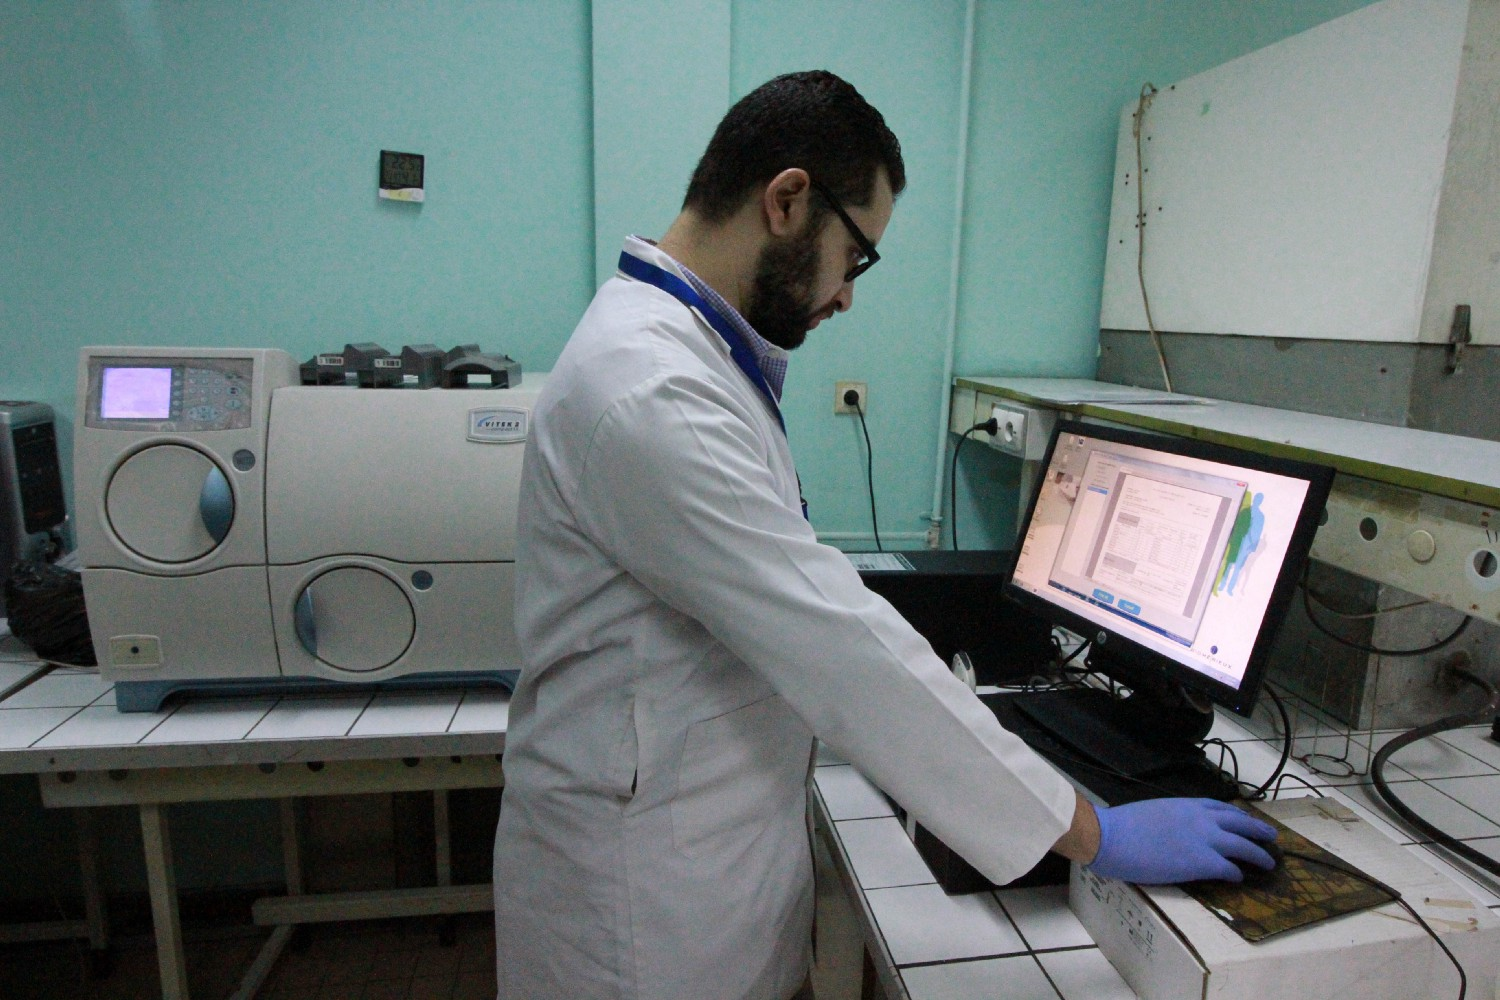 Technicians analyze samples from infected patients to find an antibiotic that can be used as a treatment. / Jon Erb, USAID